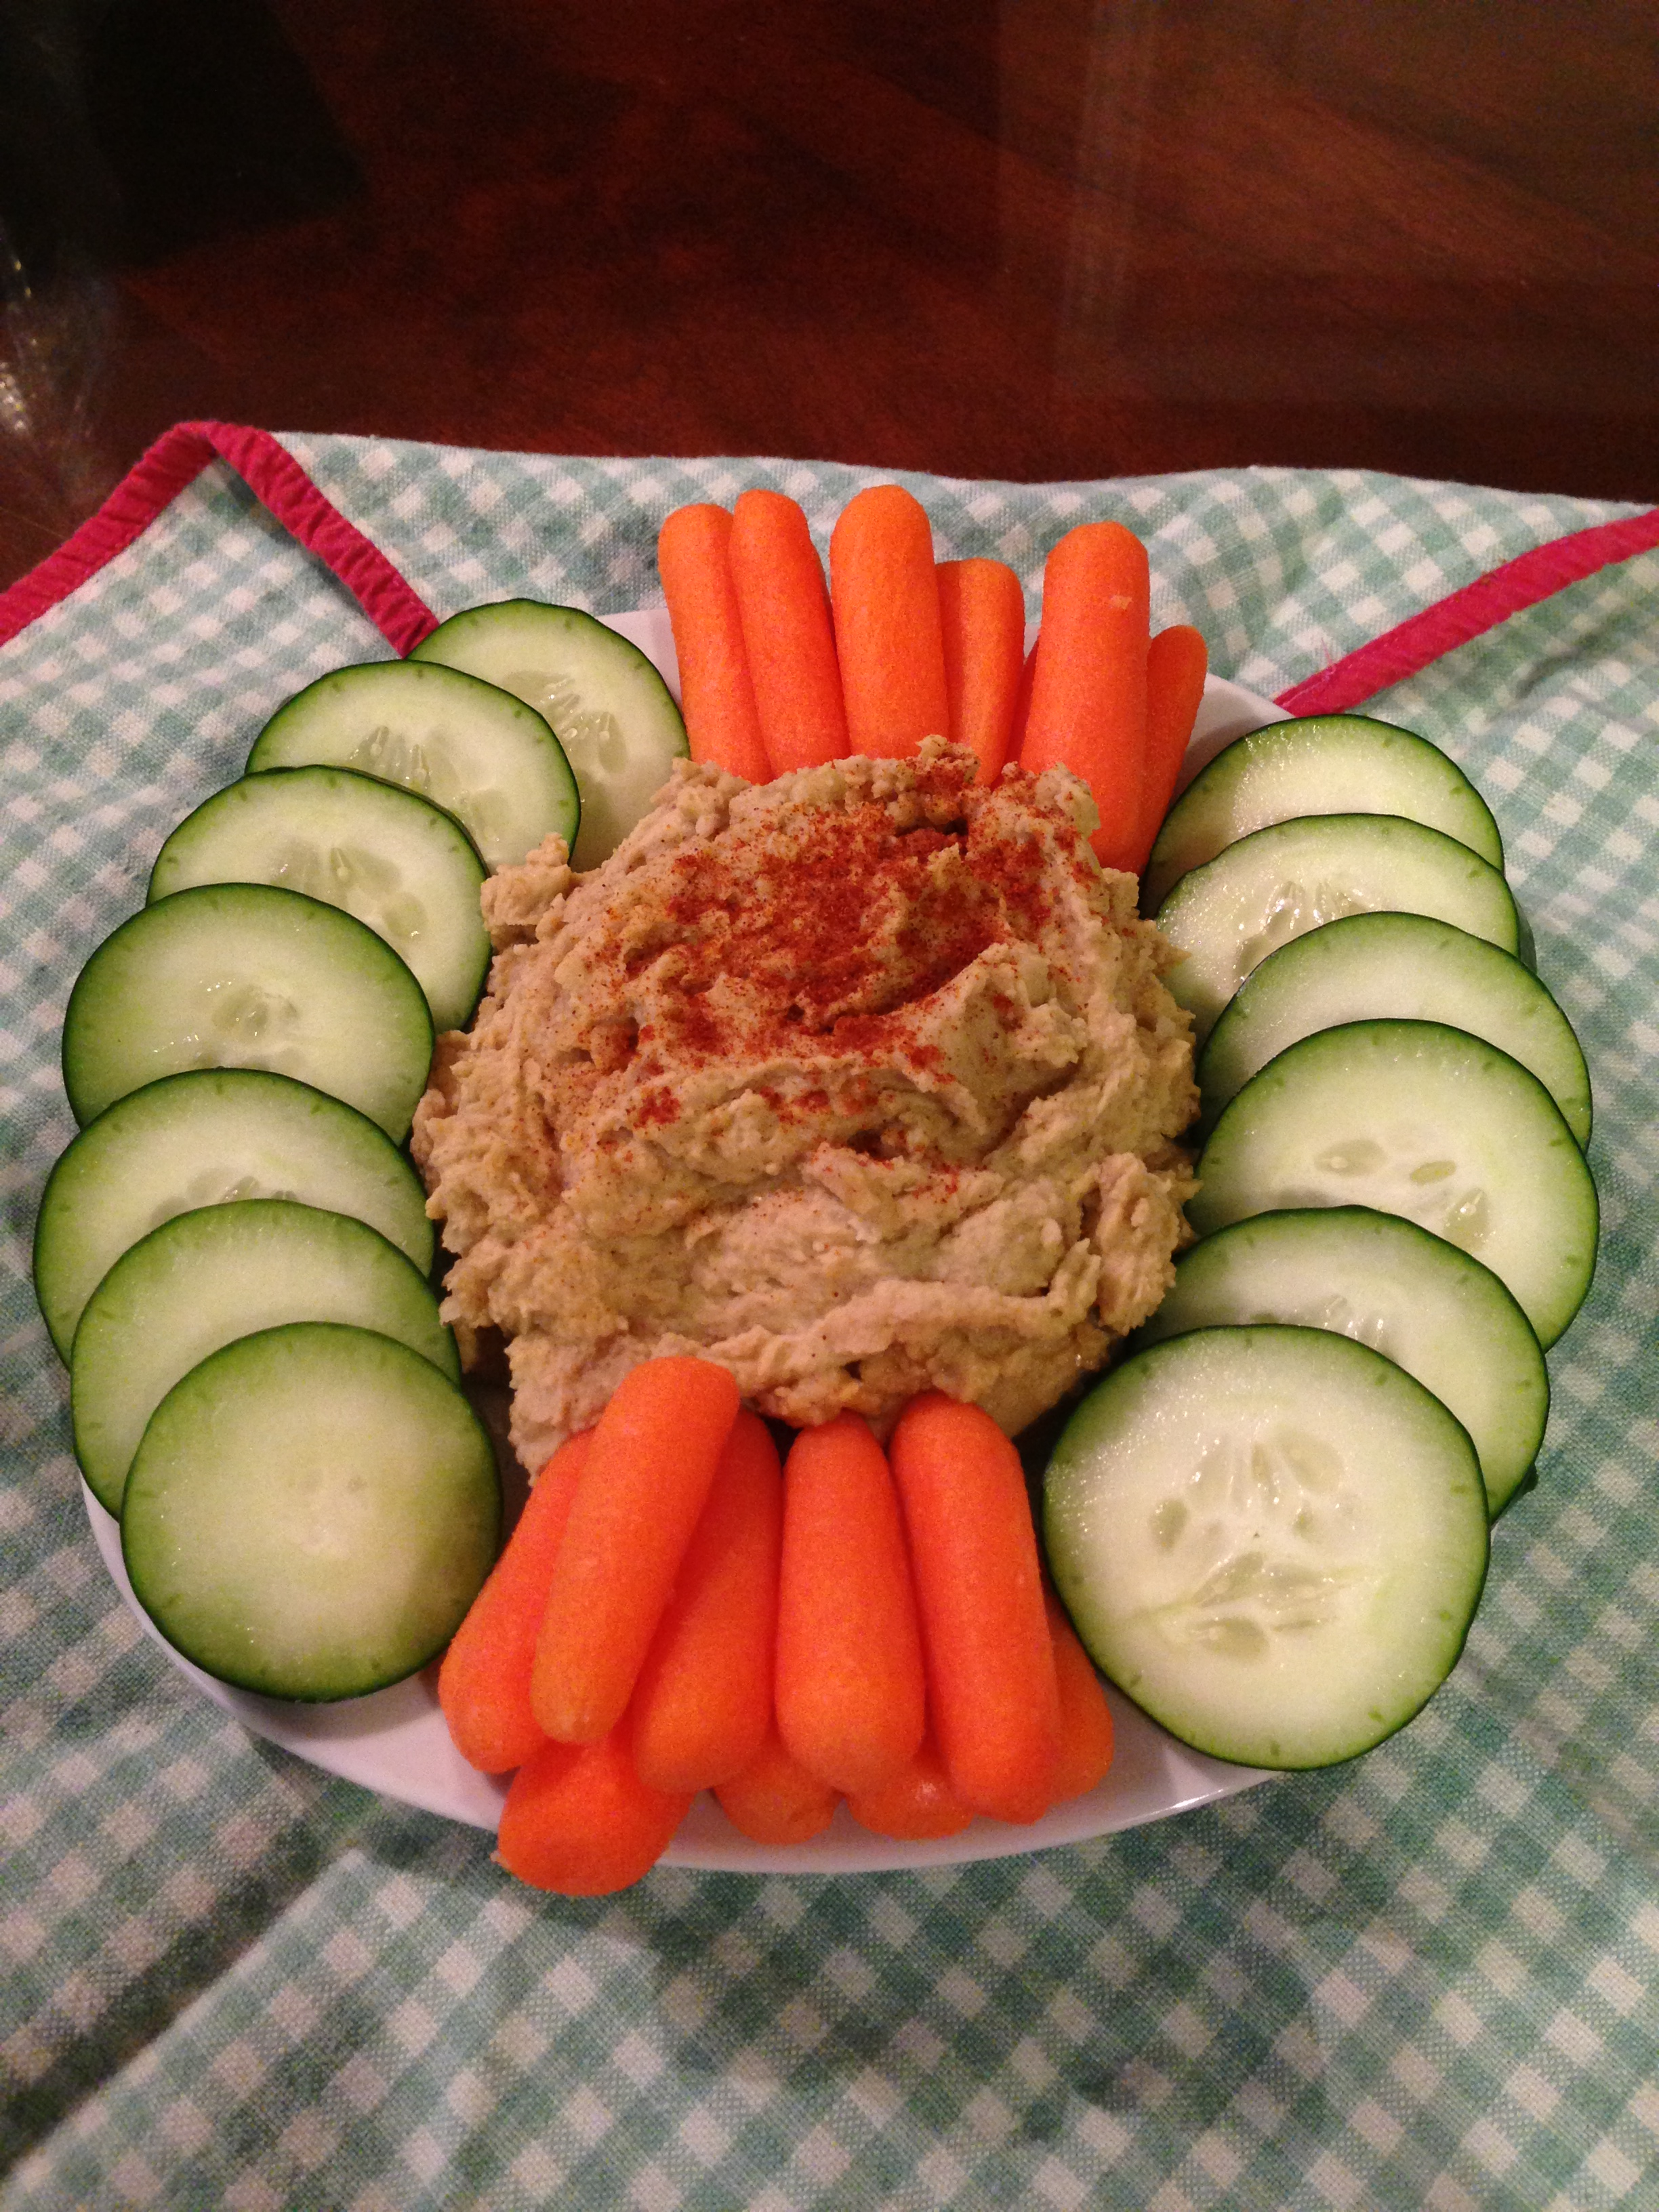 ... different variations there can be so here is my basic hummus recipe